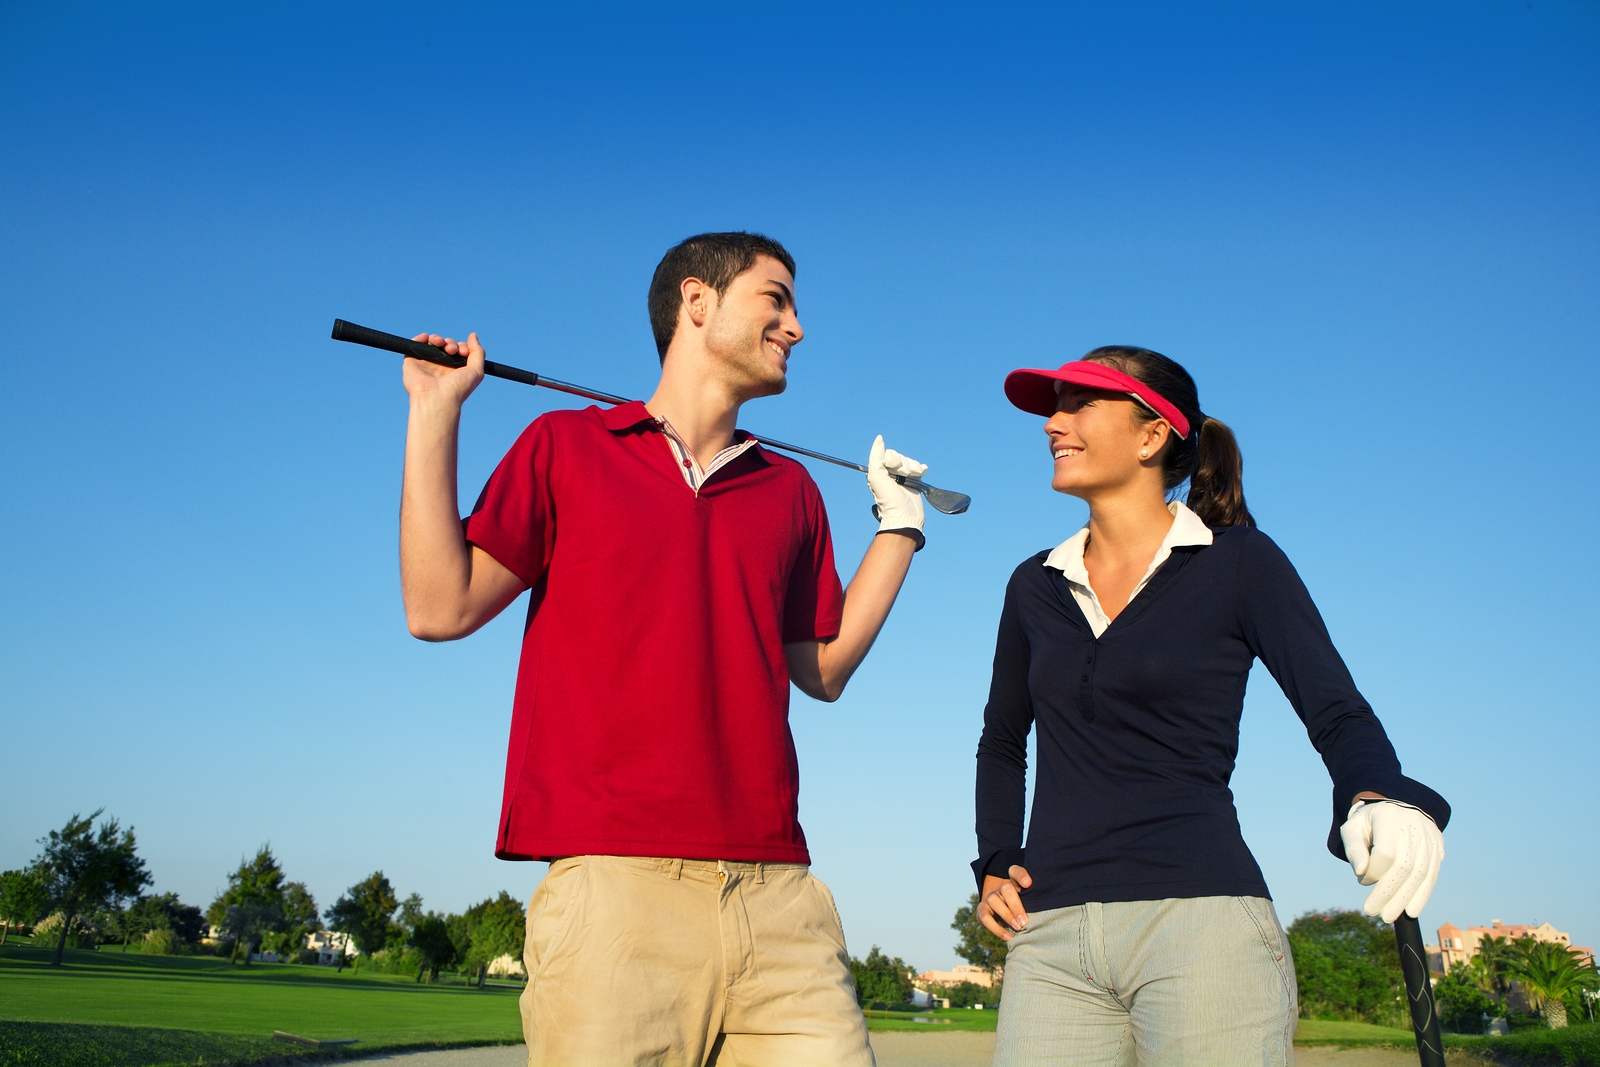 Golf Injury Treatment and Prevention with Individualized Help from Our Clayton Chiropractor Staff